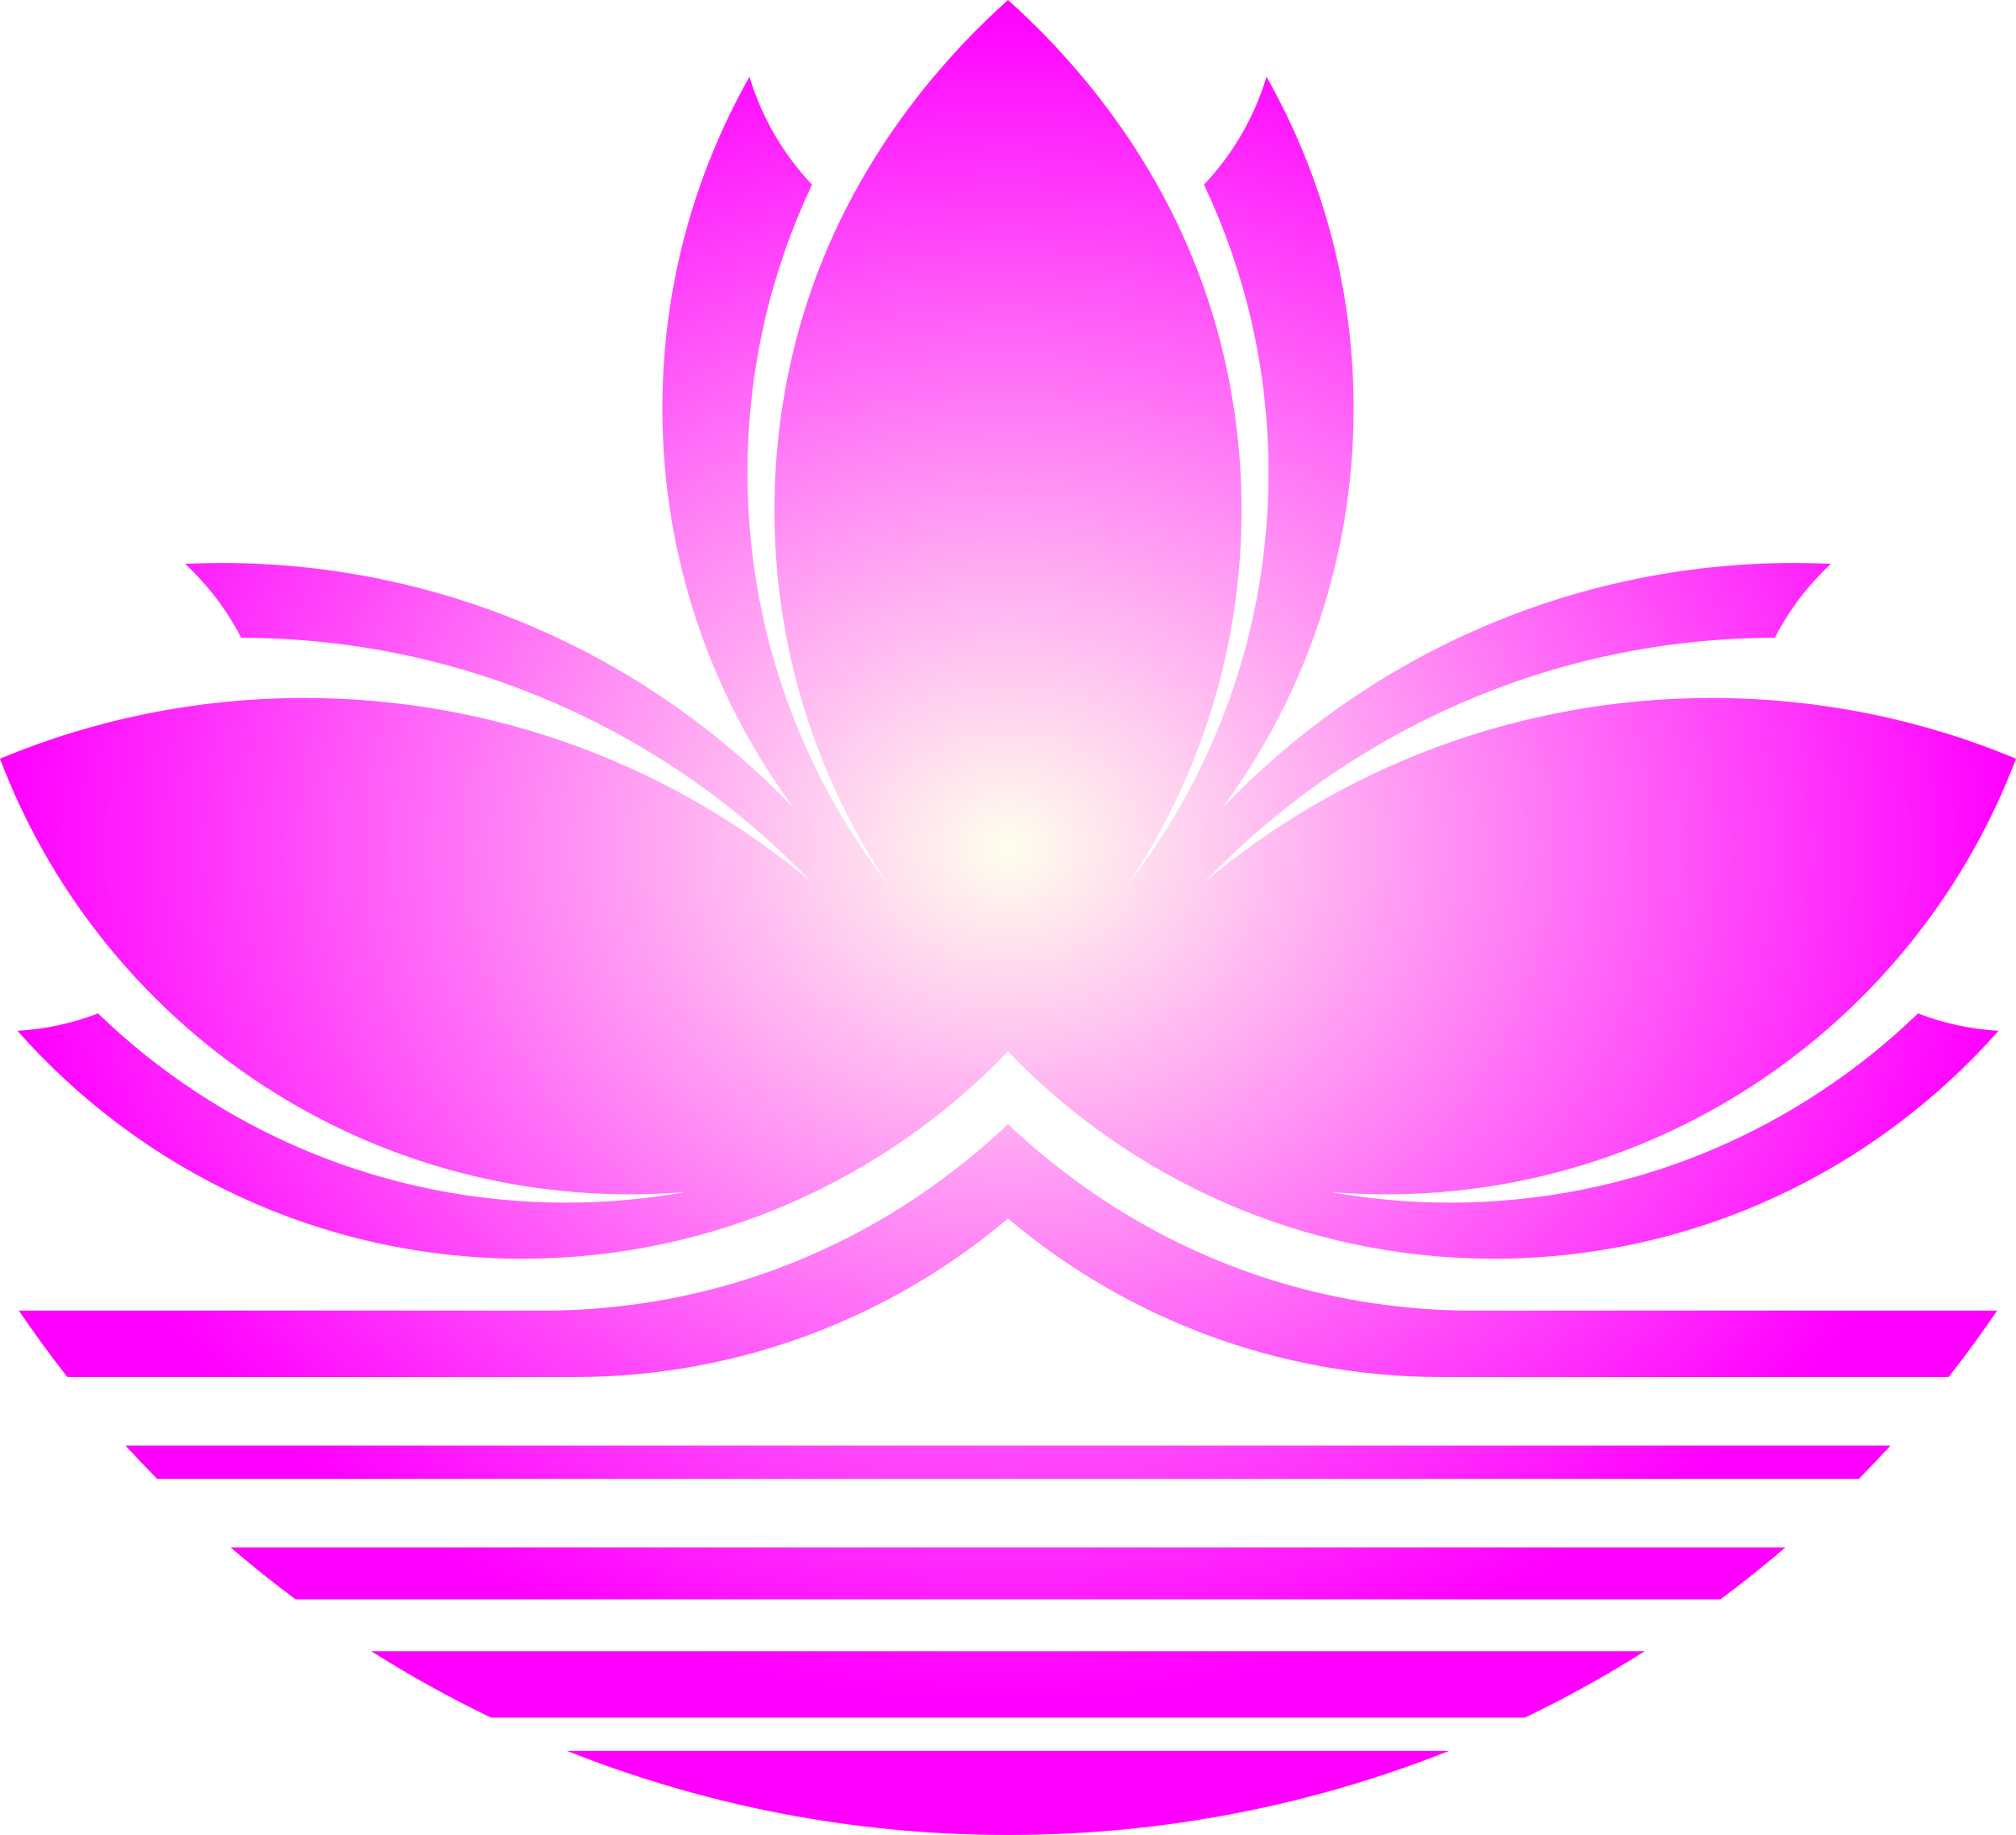 Lotus flower by Firkin